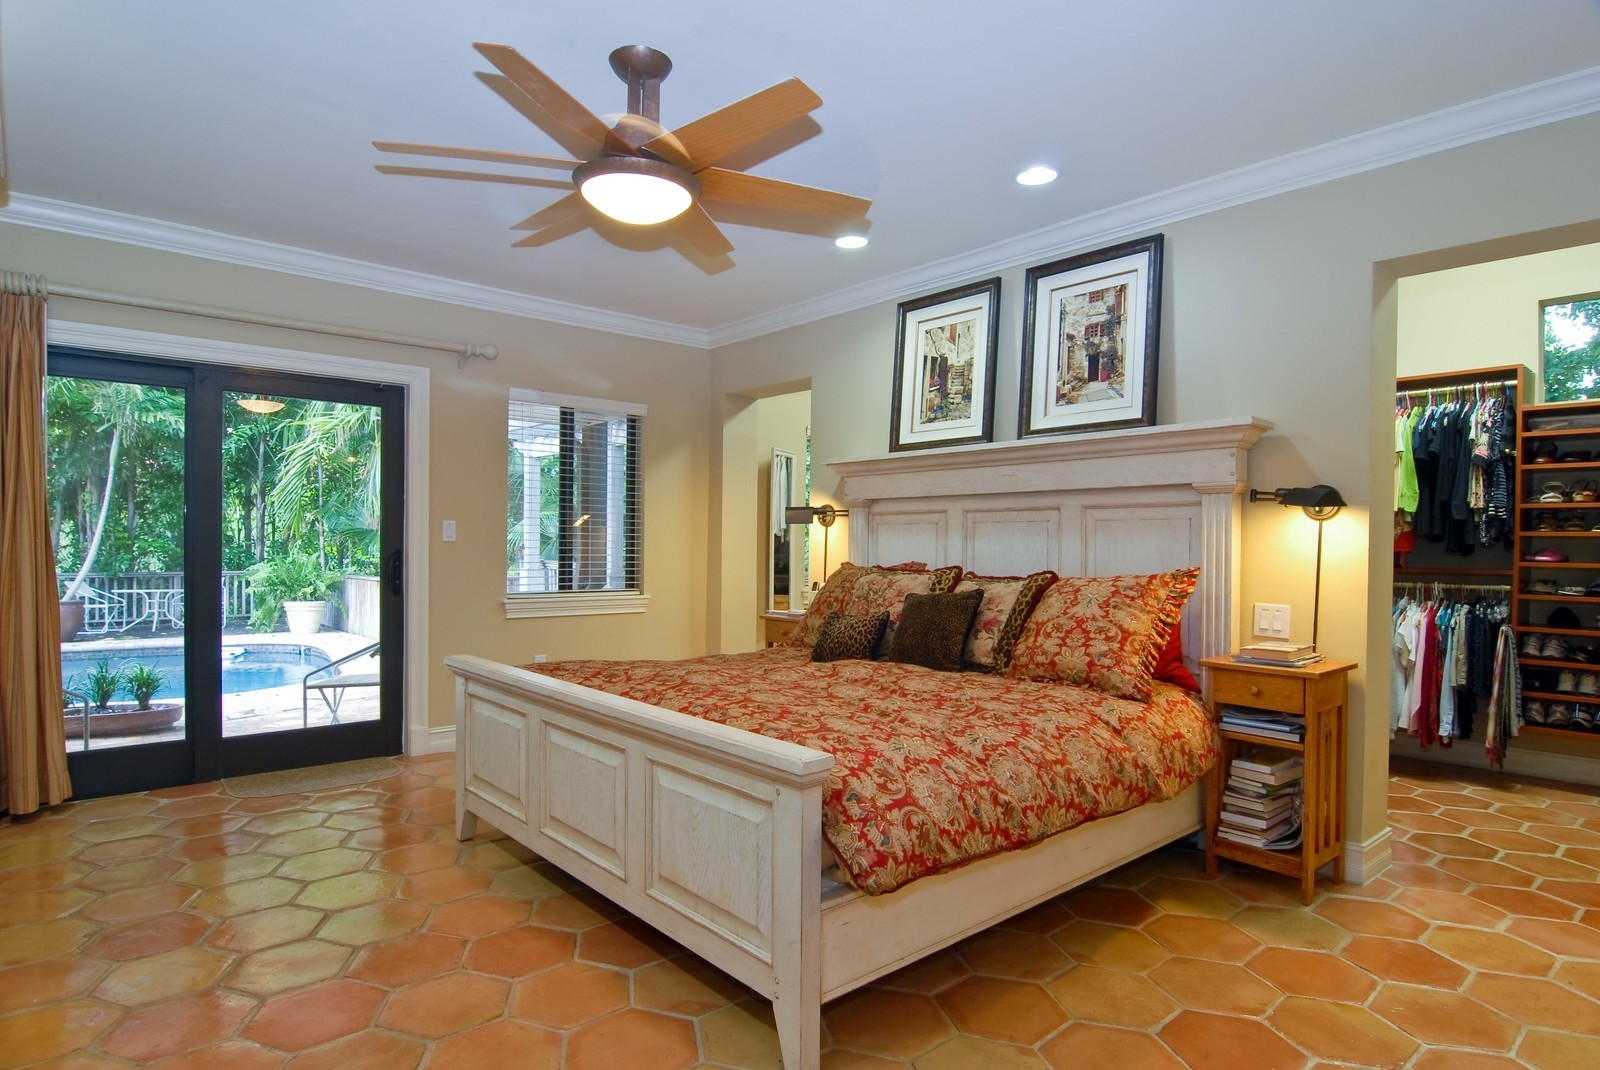 Real Estate Photography - 3403 Poinciana, Coconut Grove, FL, 33133 - Master Bedroom